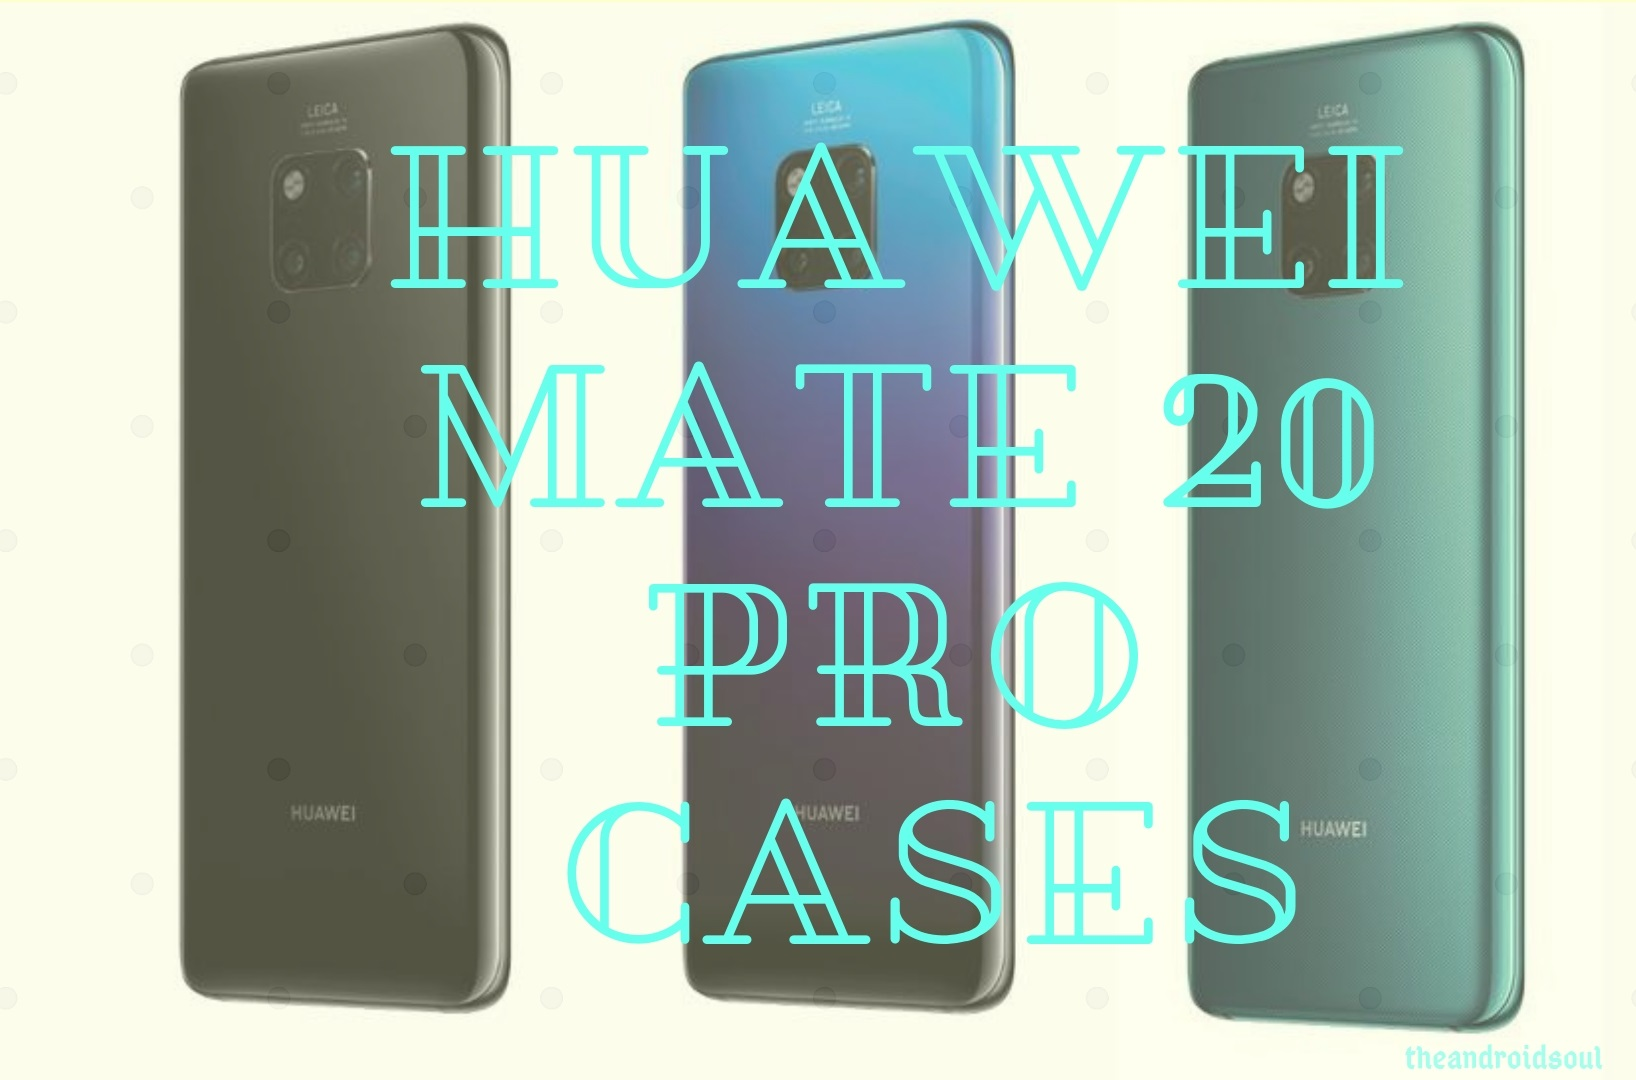 huawei mate 20 pro cases